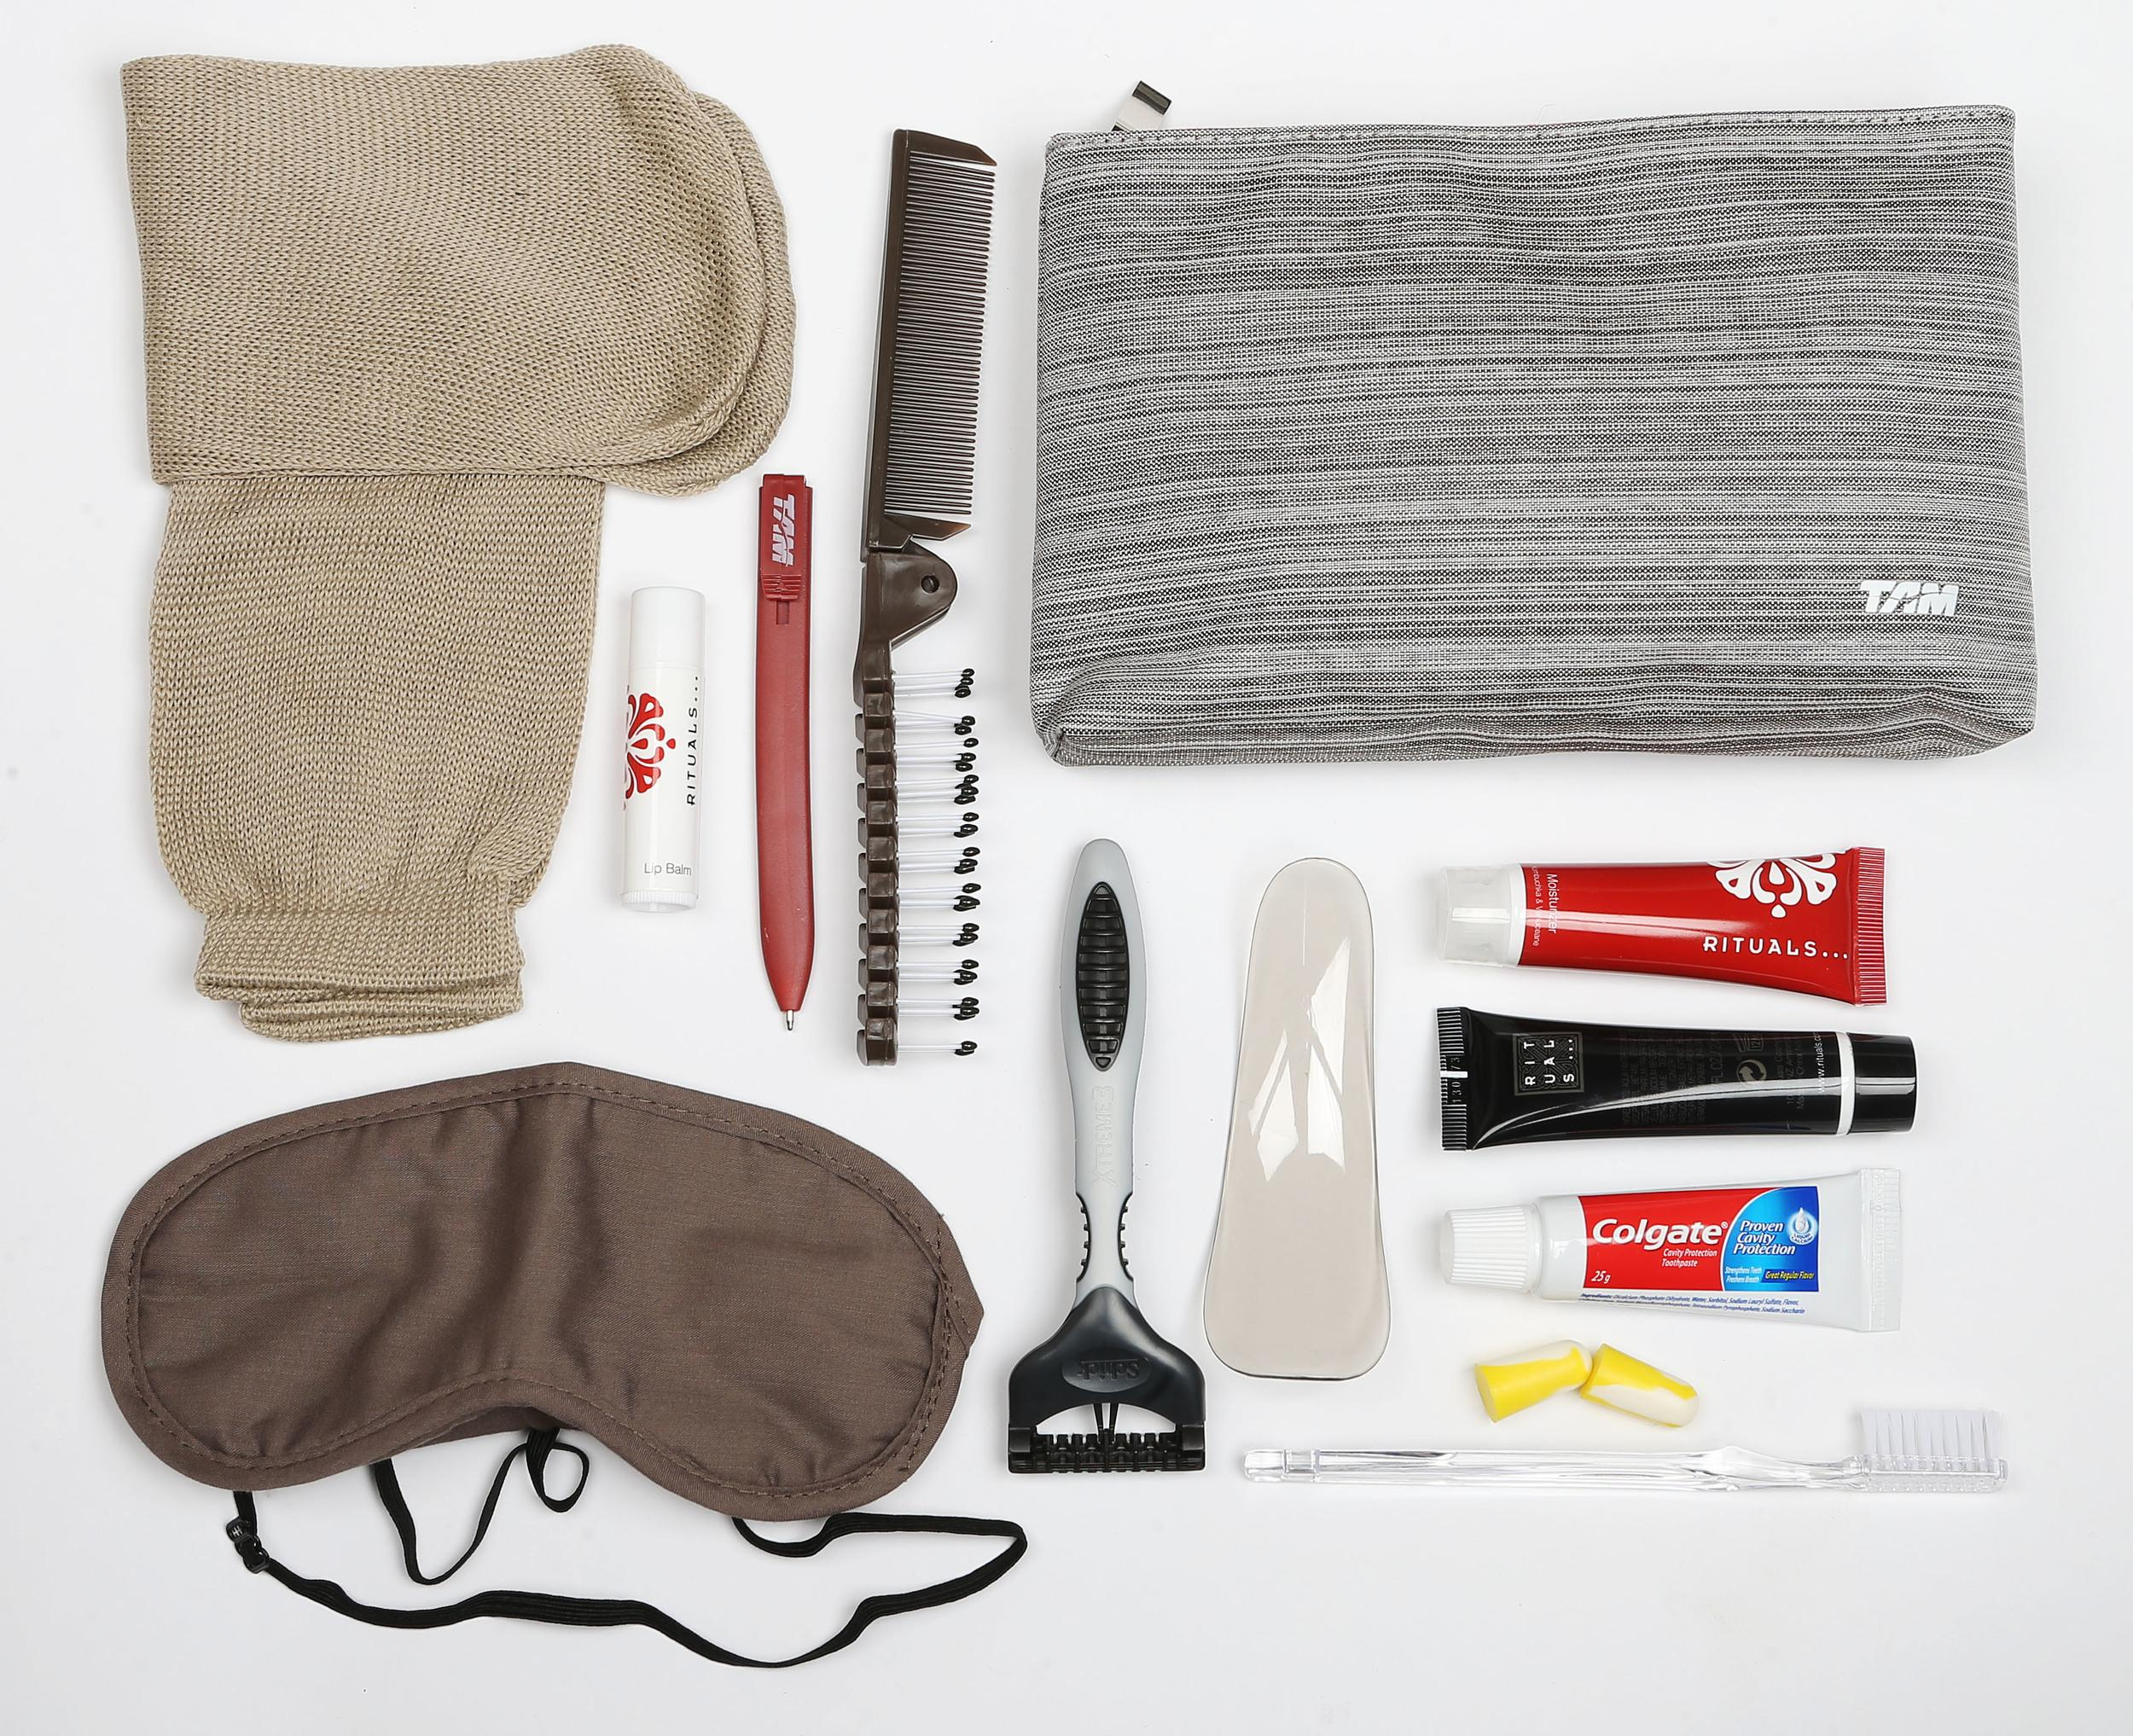 <p><strong>What do you get?</strong> Socks, eye mask, toothpaste, toothbrush, pen, shoe horn, hairbrush, Schick razor, Sperian earplugs, Rituals shaving cream, moisturiser and lip balm<br /> <strong>Best bit of the kit?</strong> The granite-patterned bag. It's solid, minimalist quality.</p>